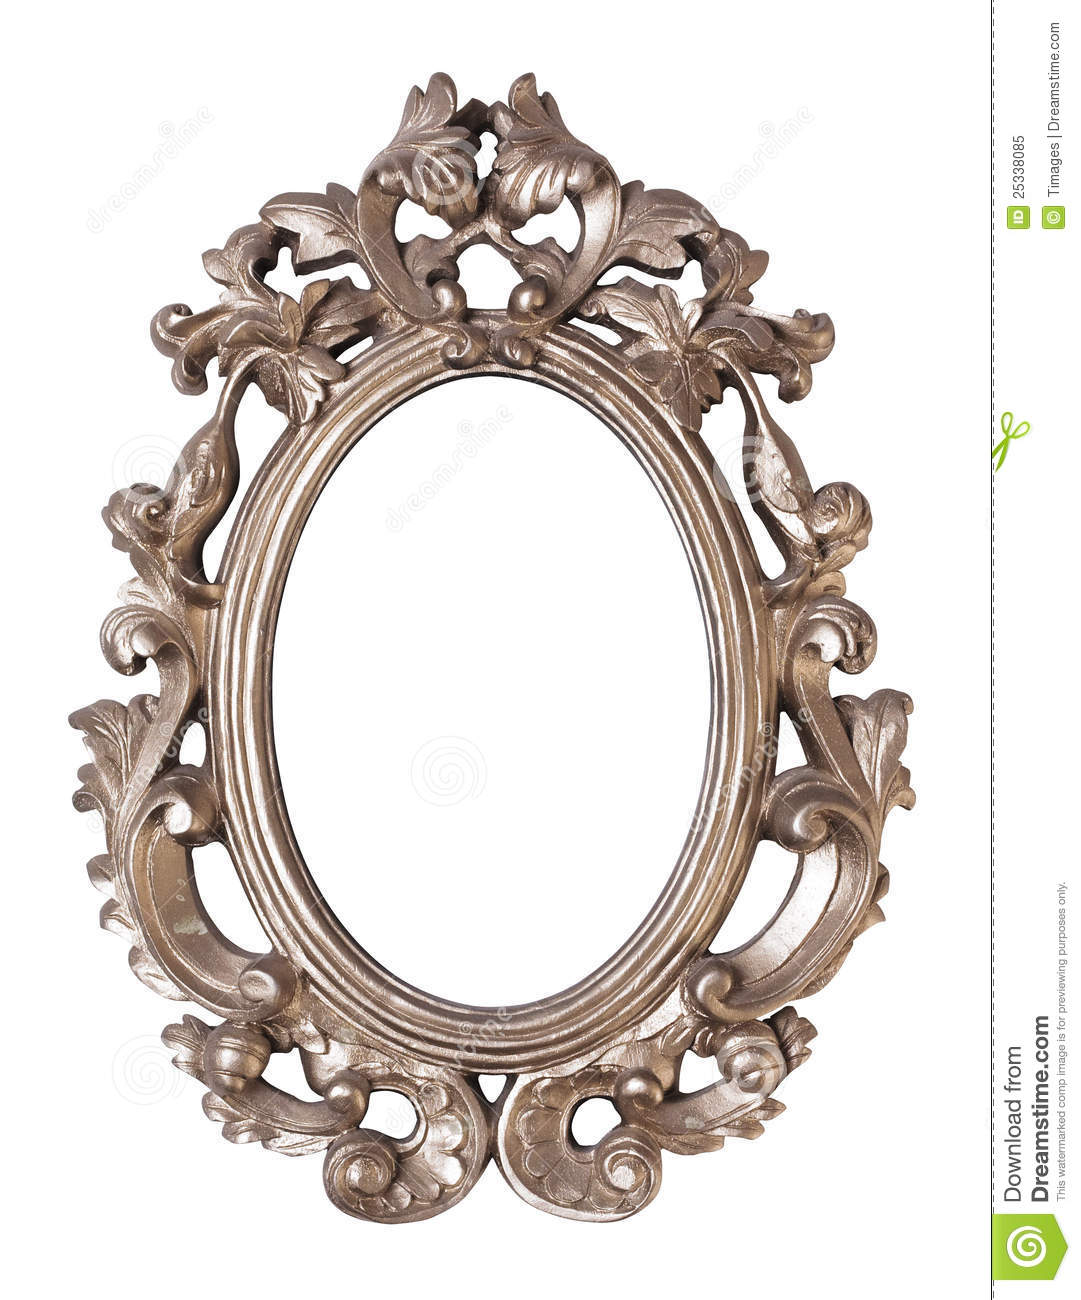 ornate oval picture frame royalty free stock photo image 25338085. Black Bedroom Furniture Sets. Home Design Ideas